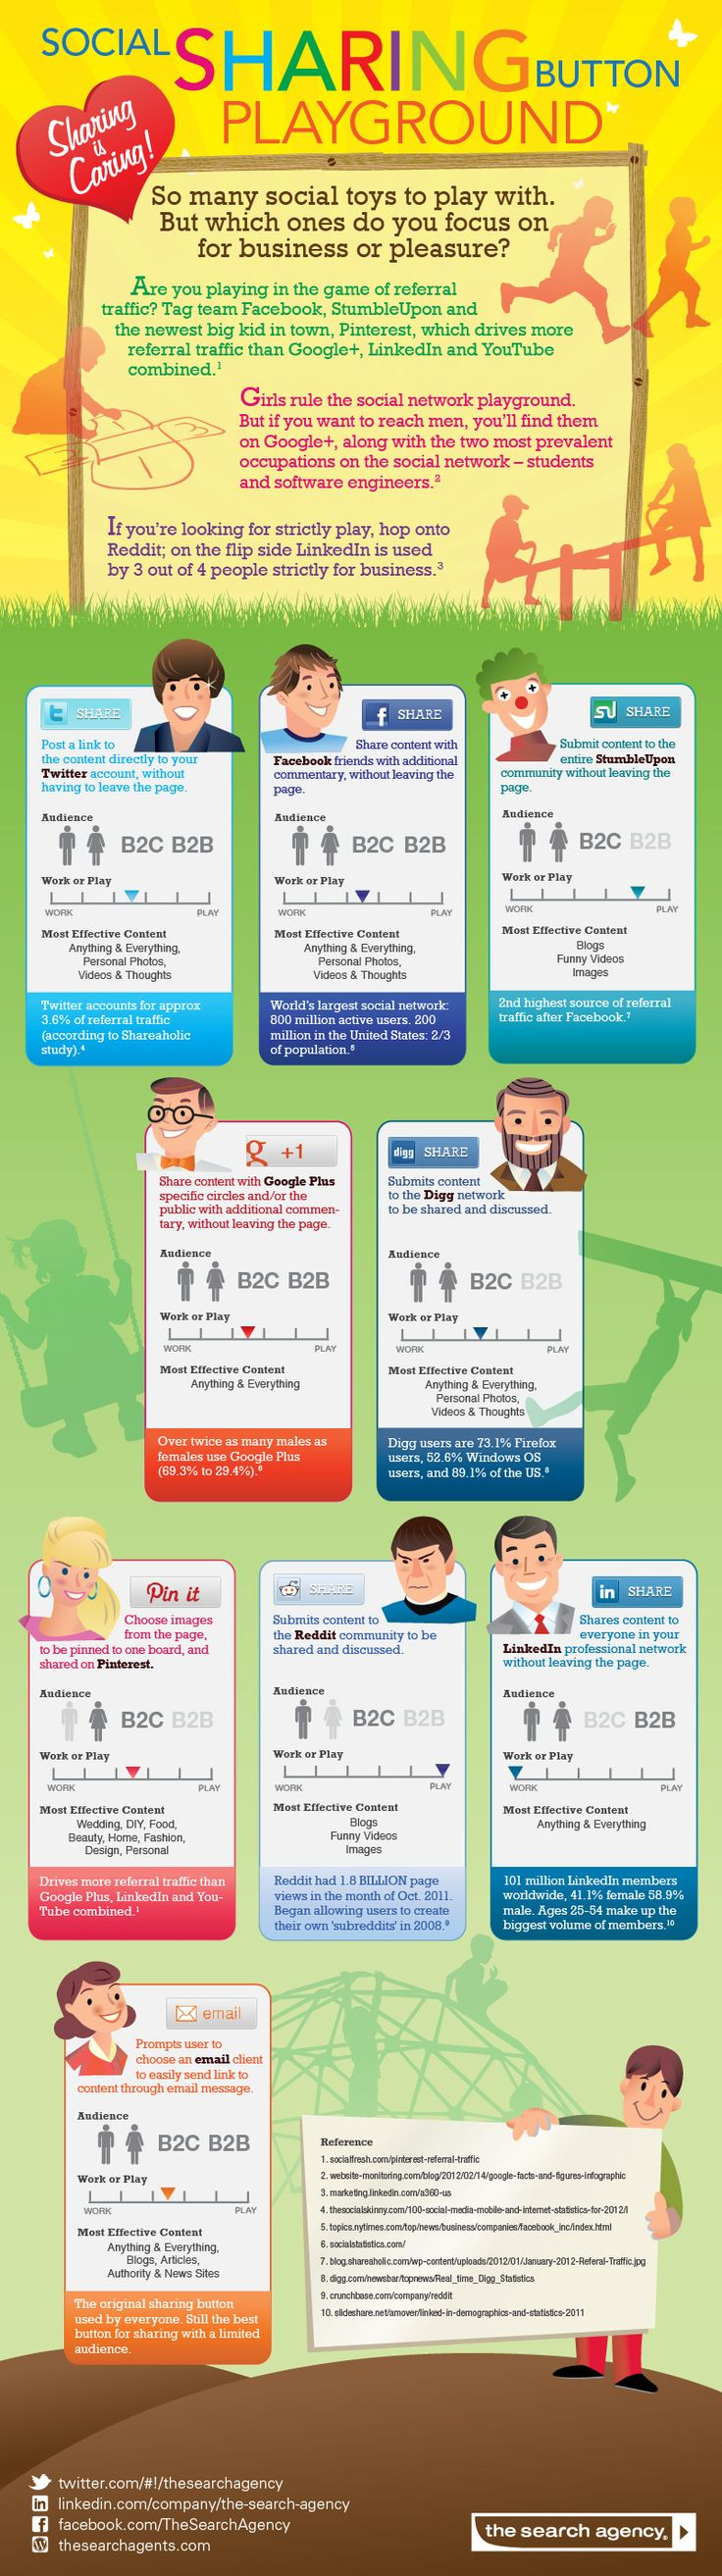 Social Sharing Infographic:  Which ones do people focus on for business or for pleasure?  Twitter - Facebook - Google+ - Pinterest - LinkedIn and others are mentioned in this infographic. #fb